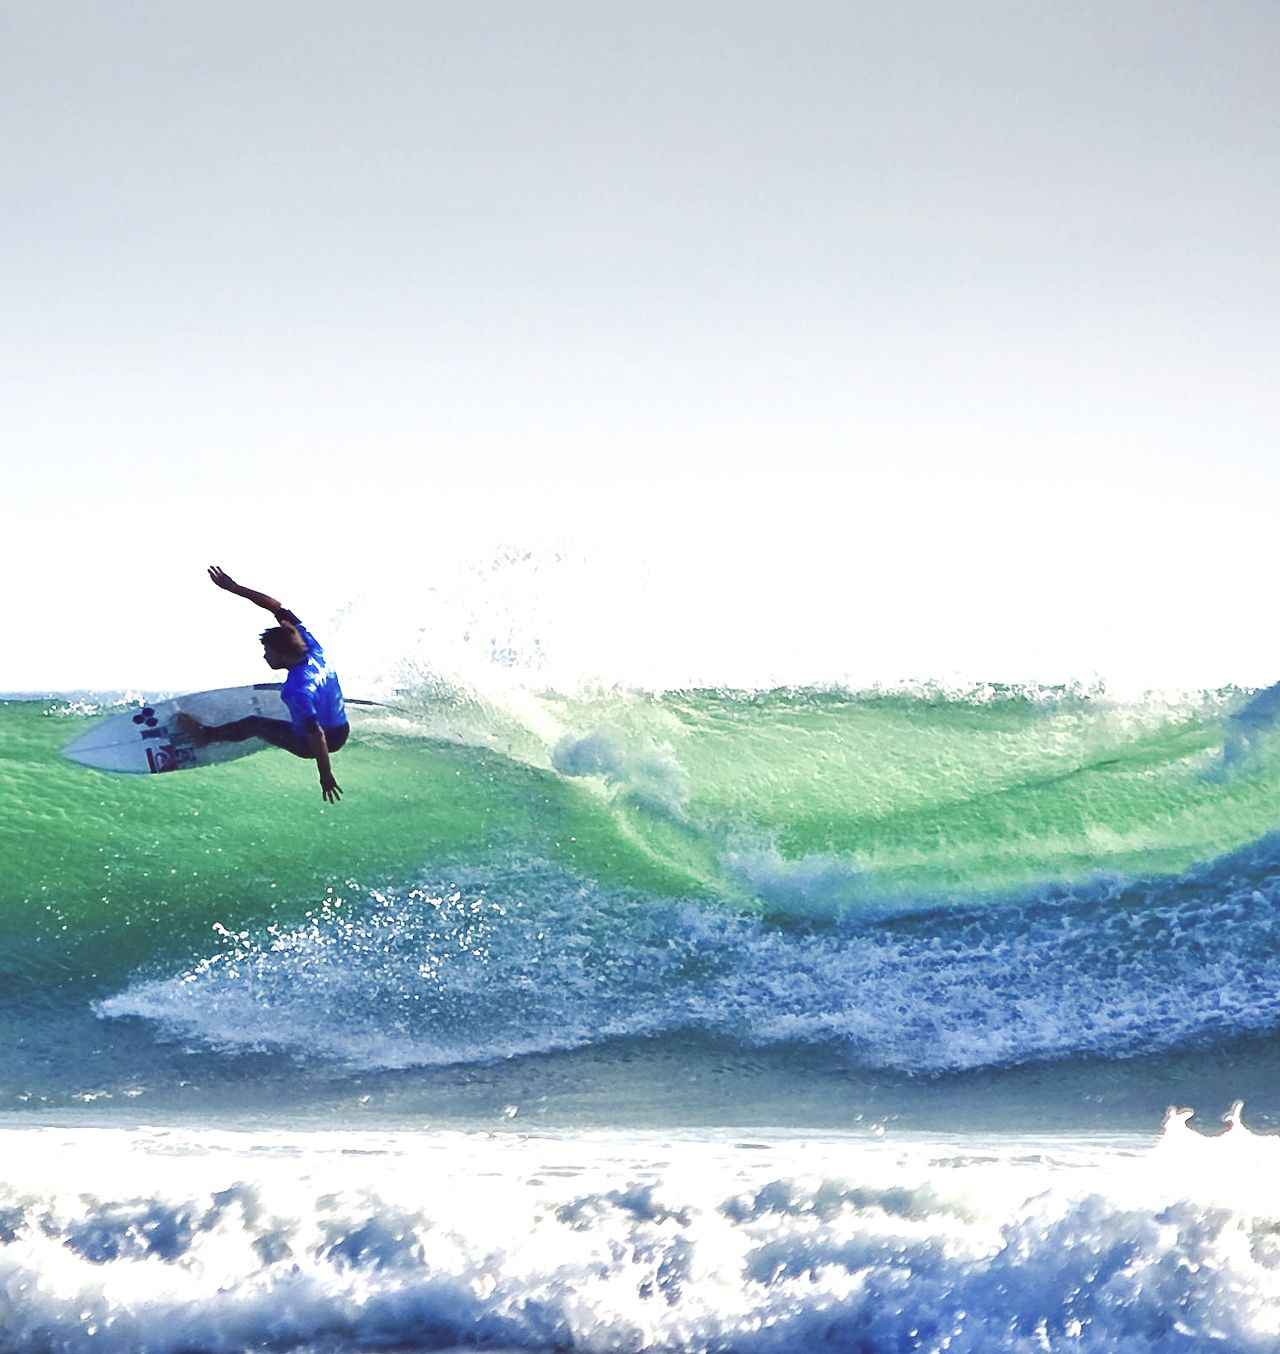 Some Epic Surfing Photography Photos Taken While Riding Waves - 16 epic surfing photos